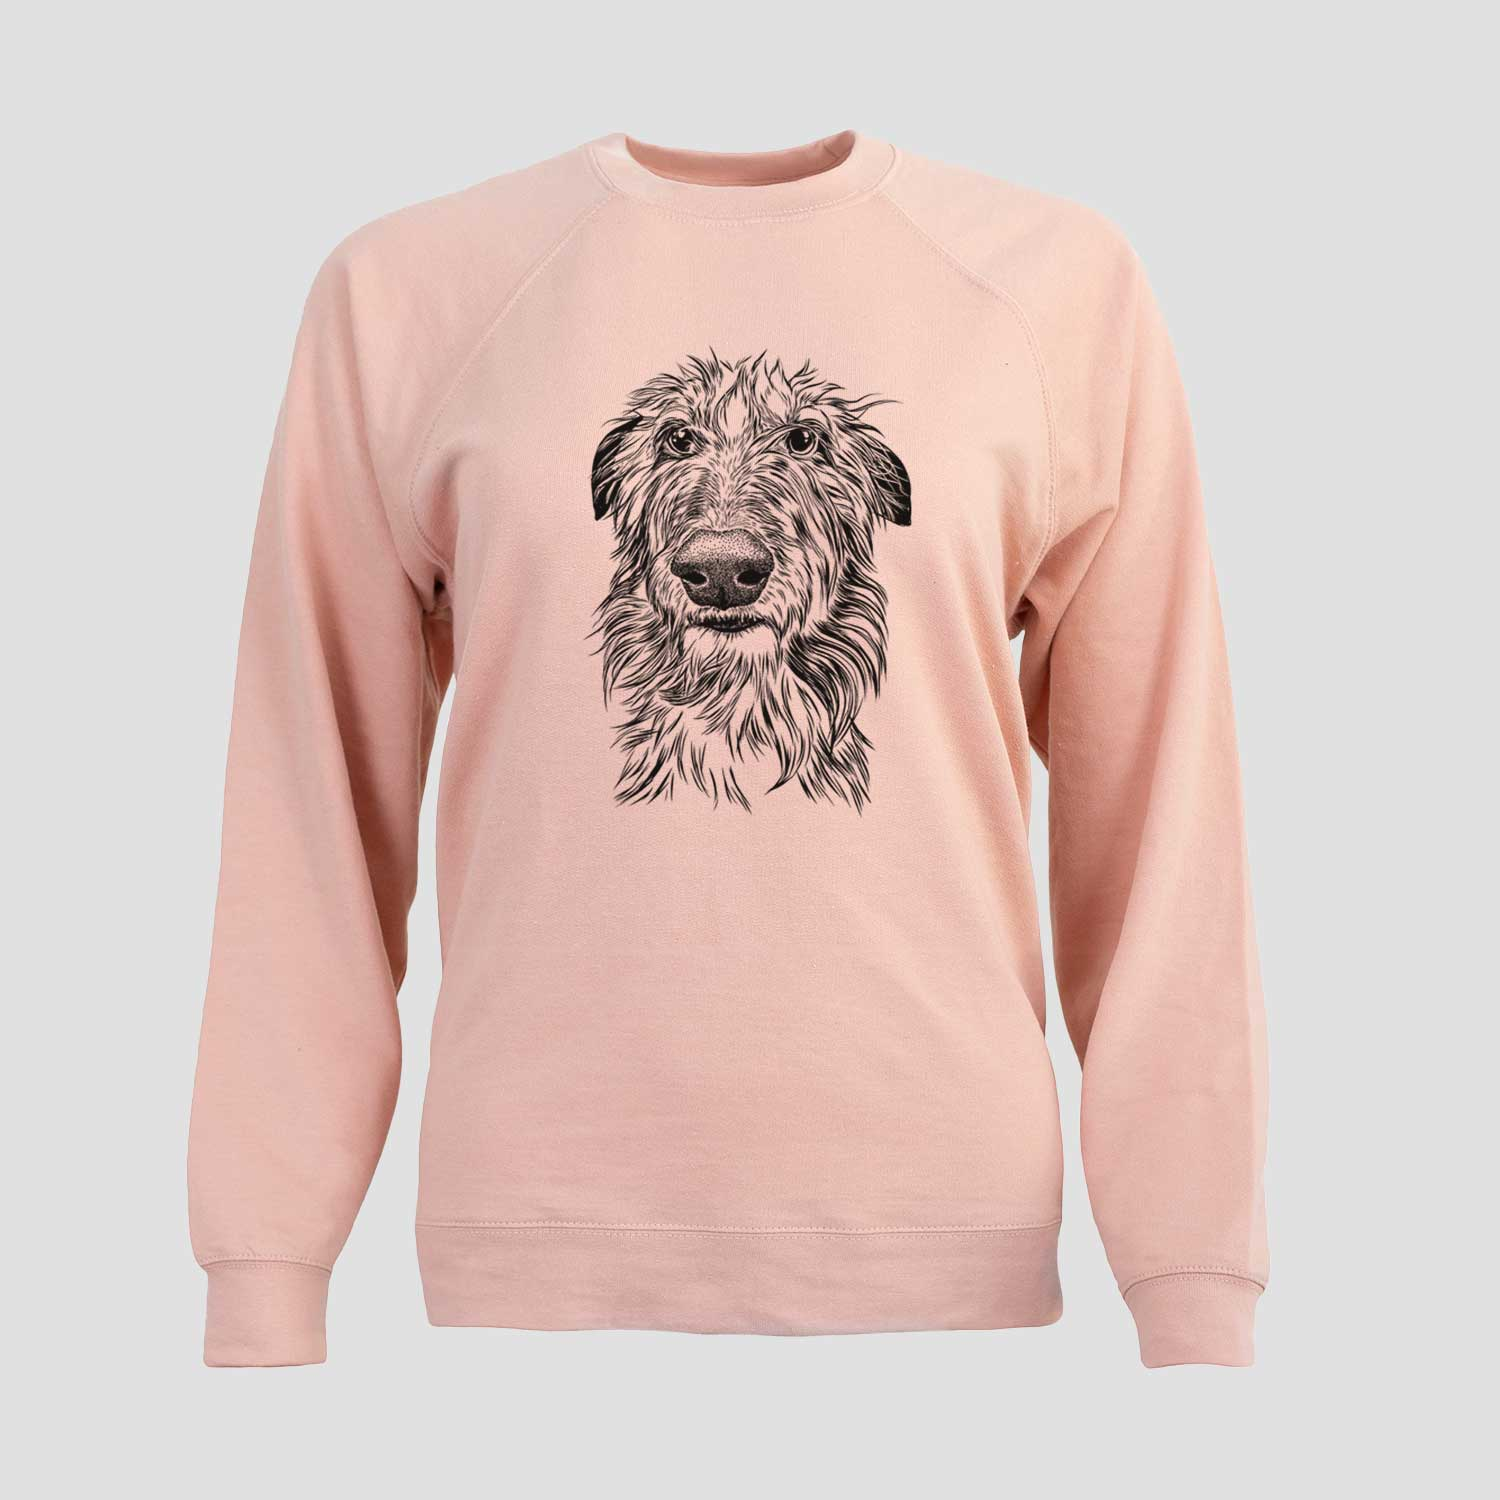 Cleod the Scottish Deerhound - Unisex Loopback Crewneck Sweatshirt